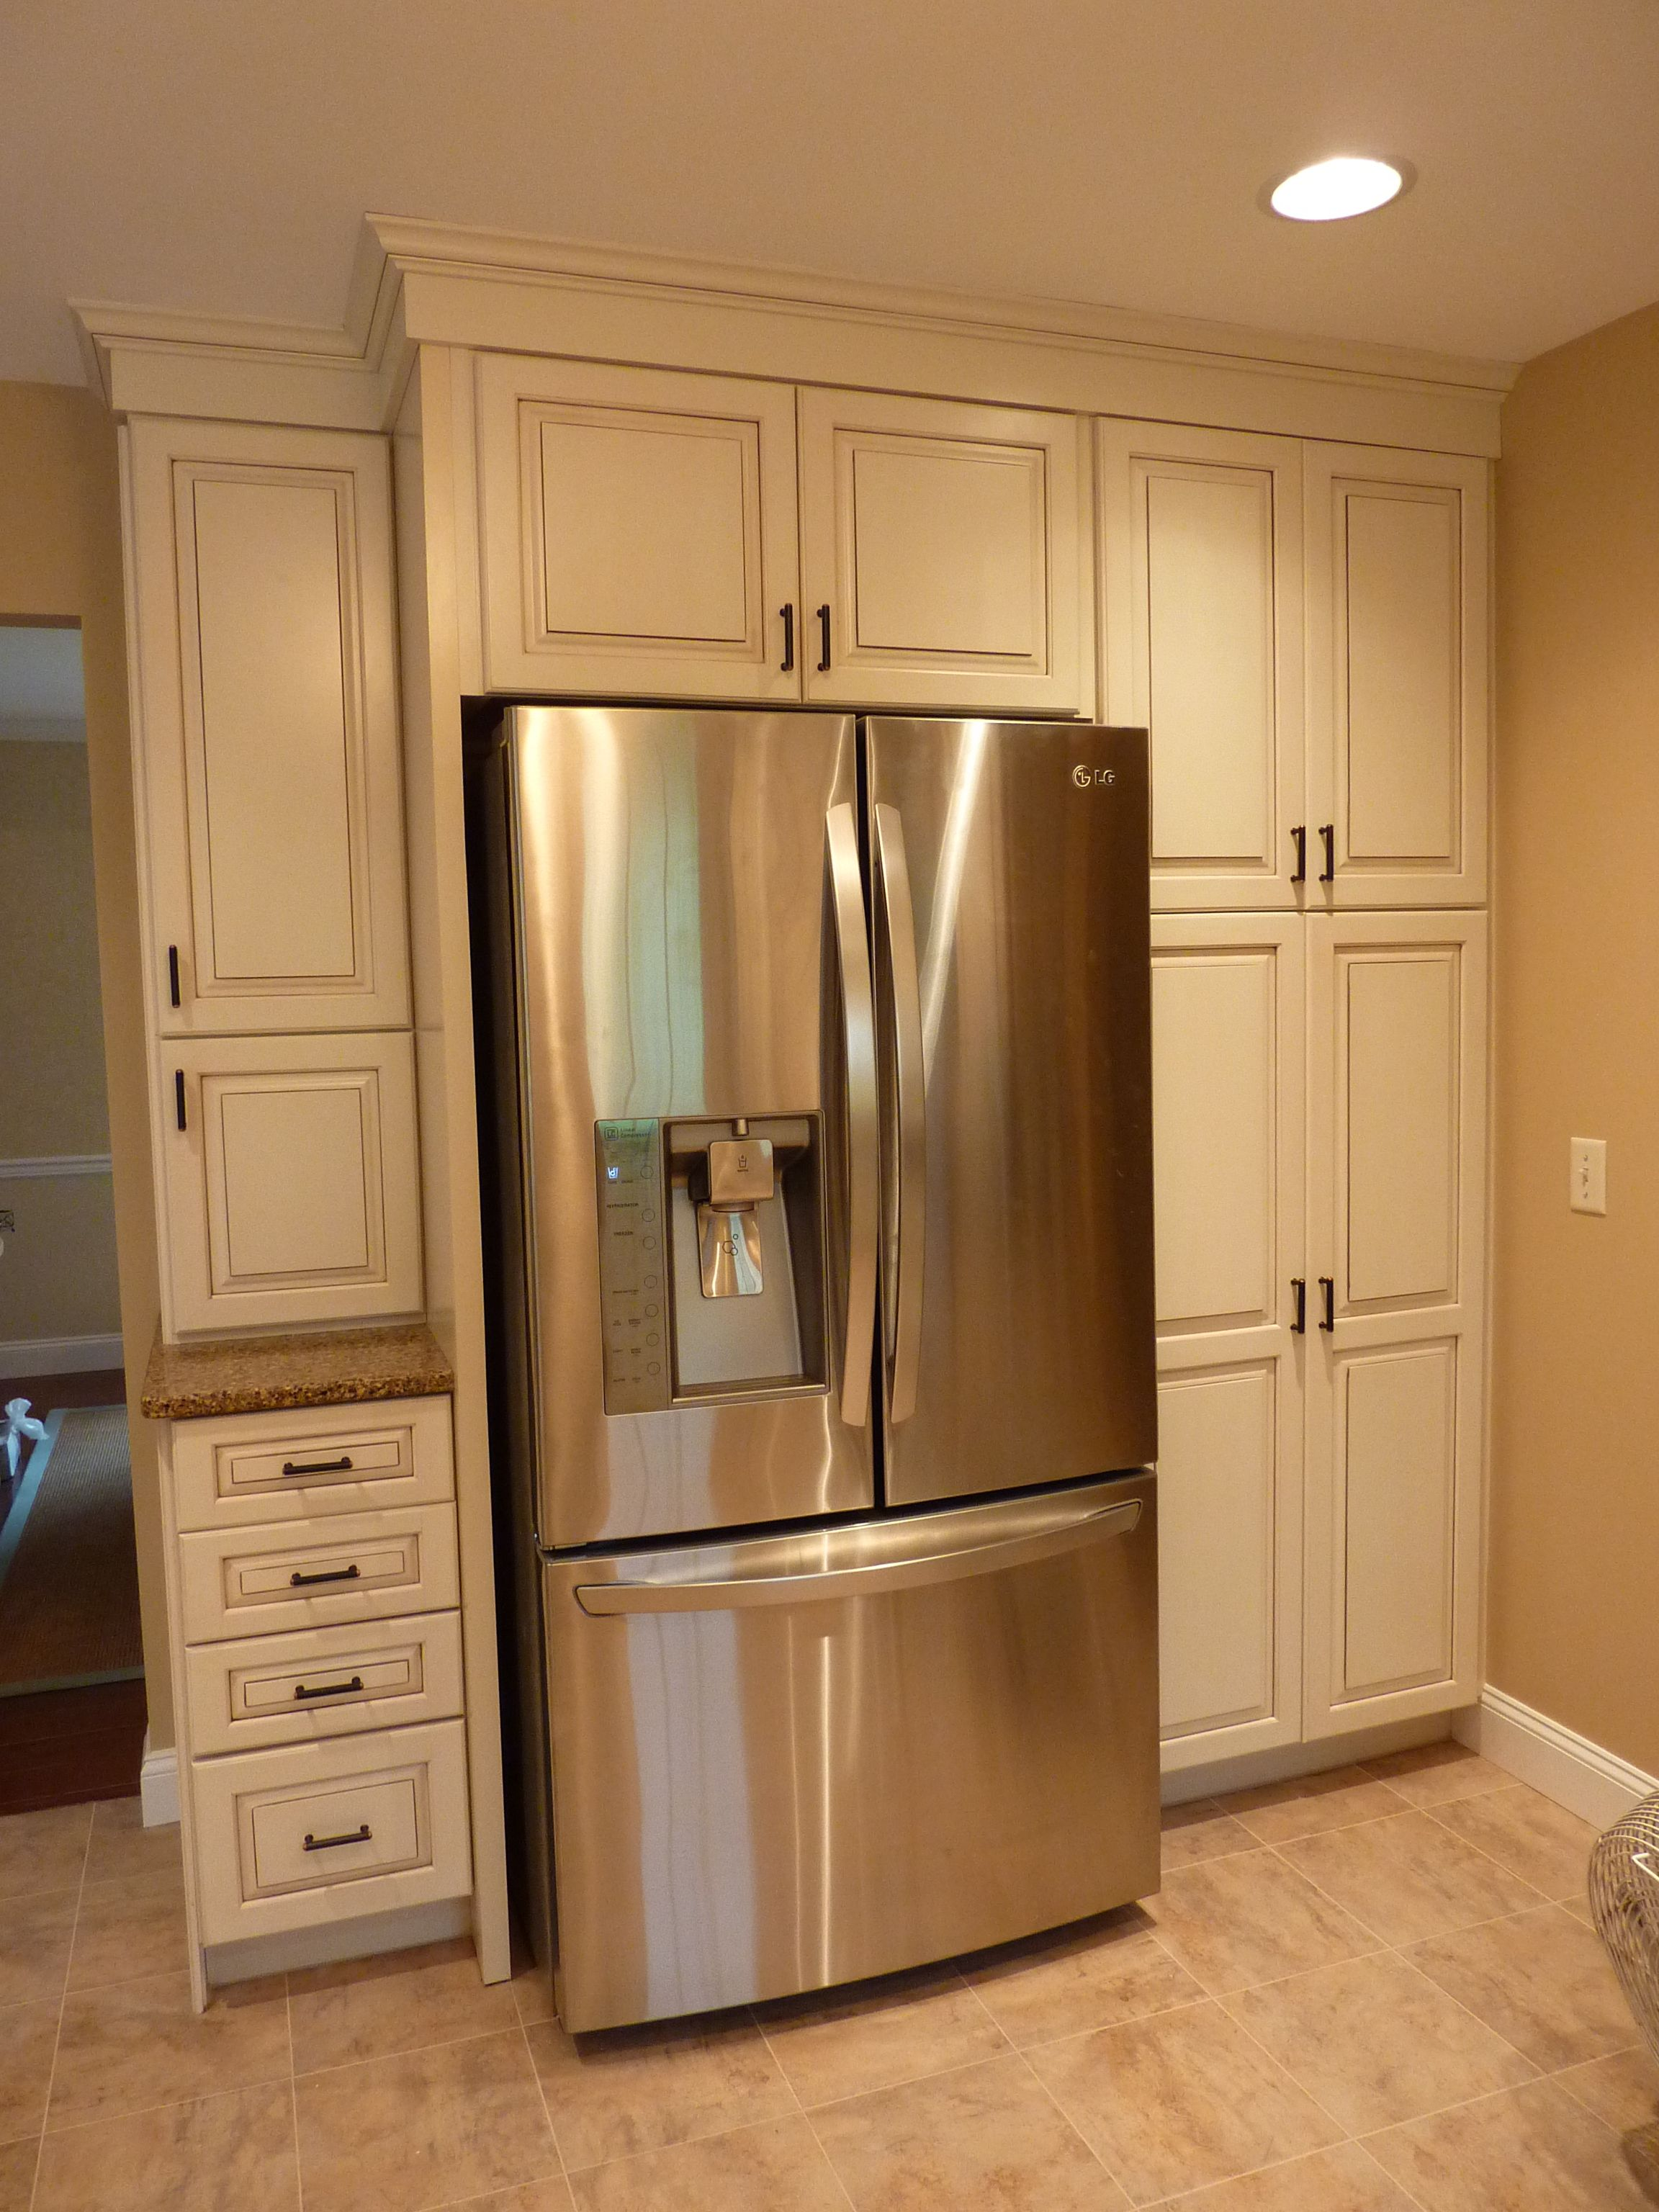 Best Kraftmaid Offwhite Cabinets With A Glaze Build In The 400 x 300